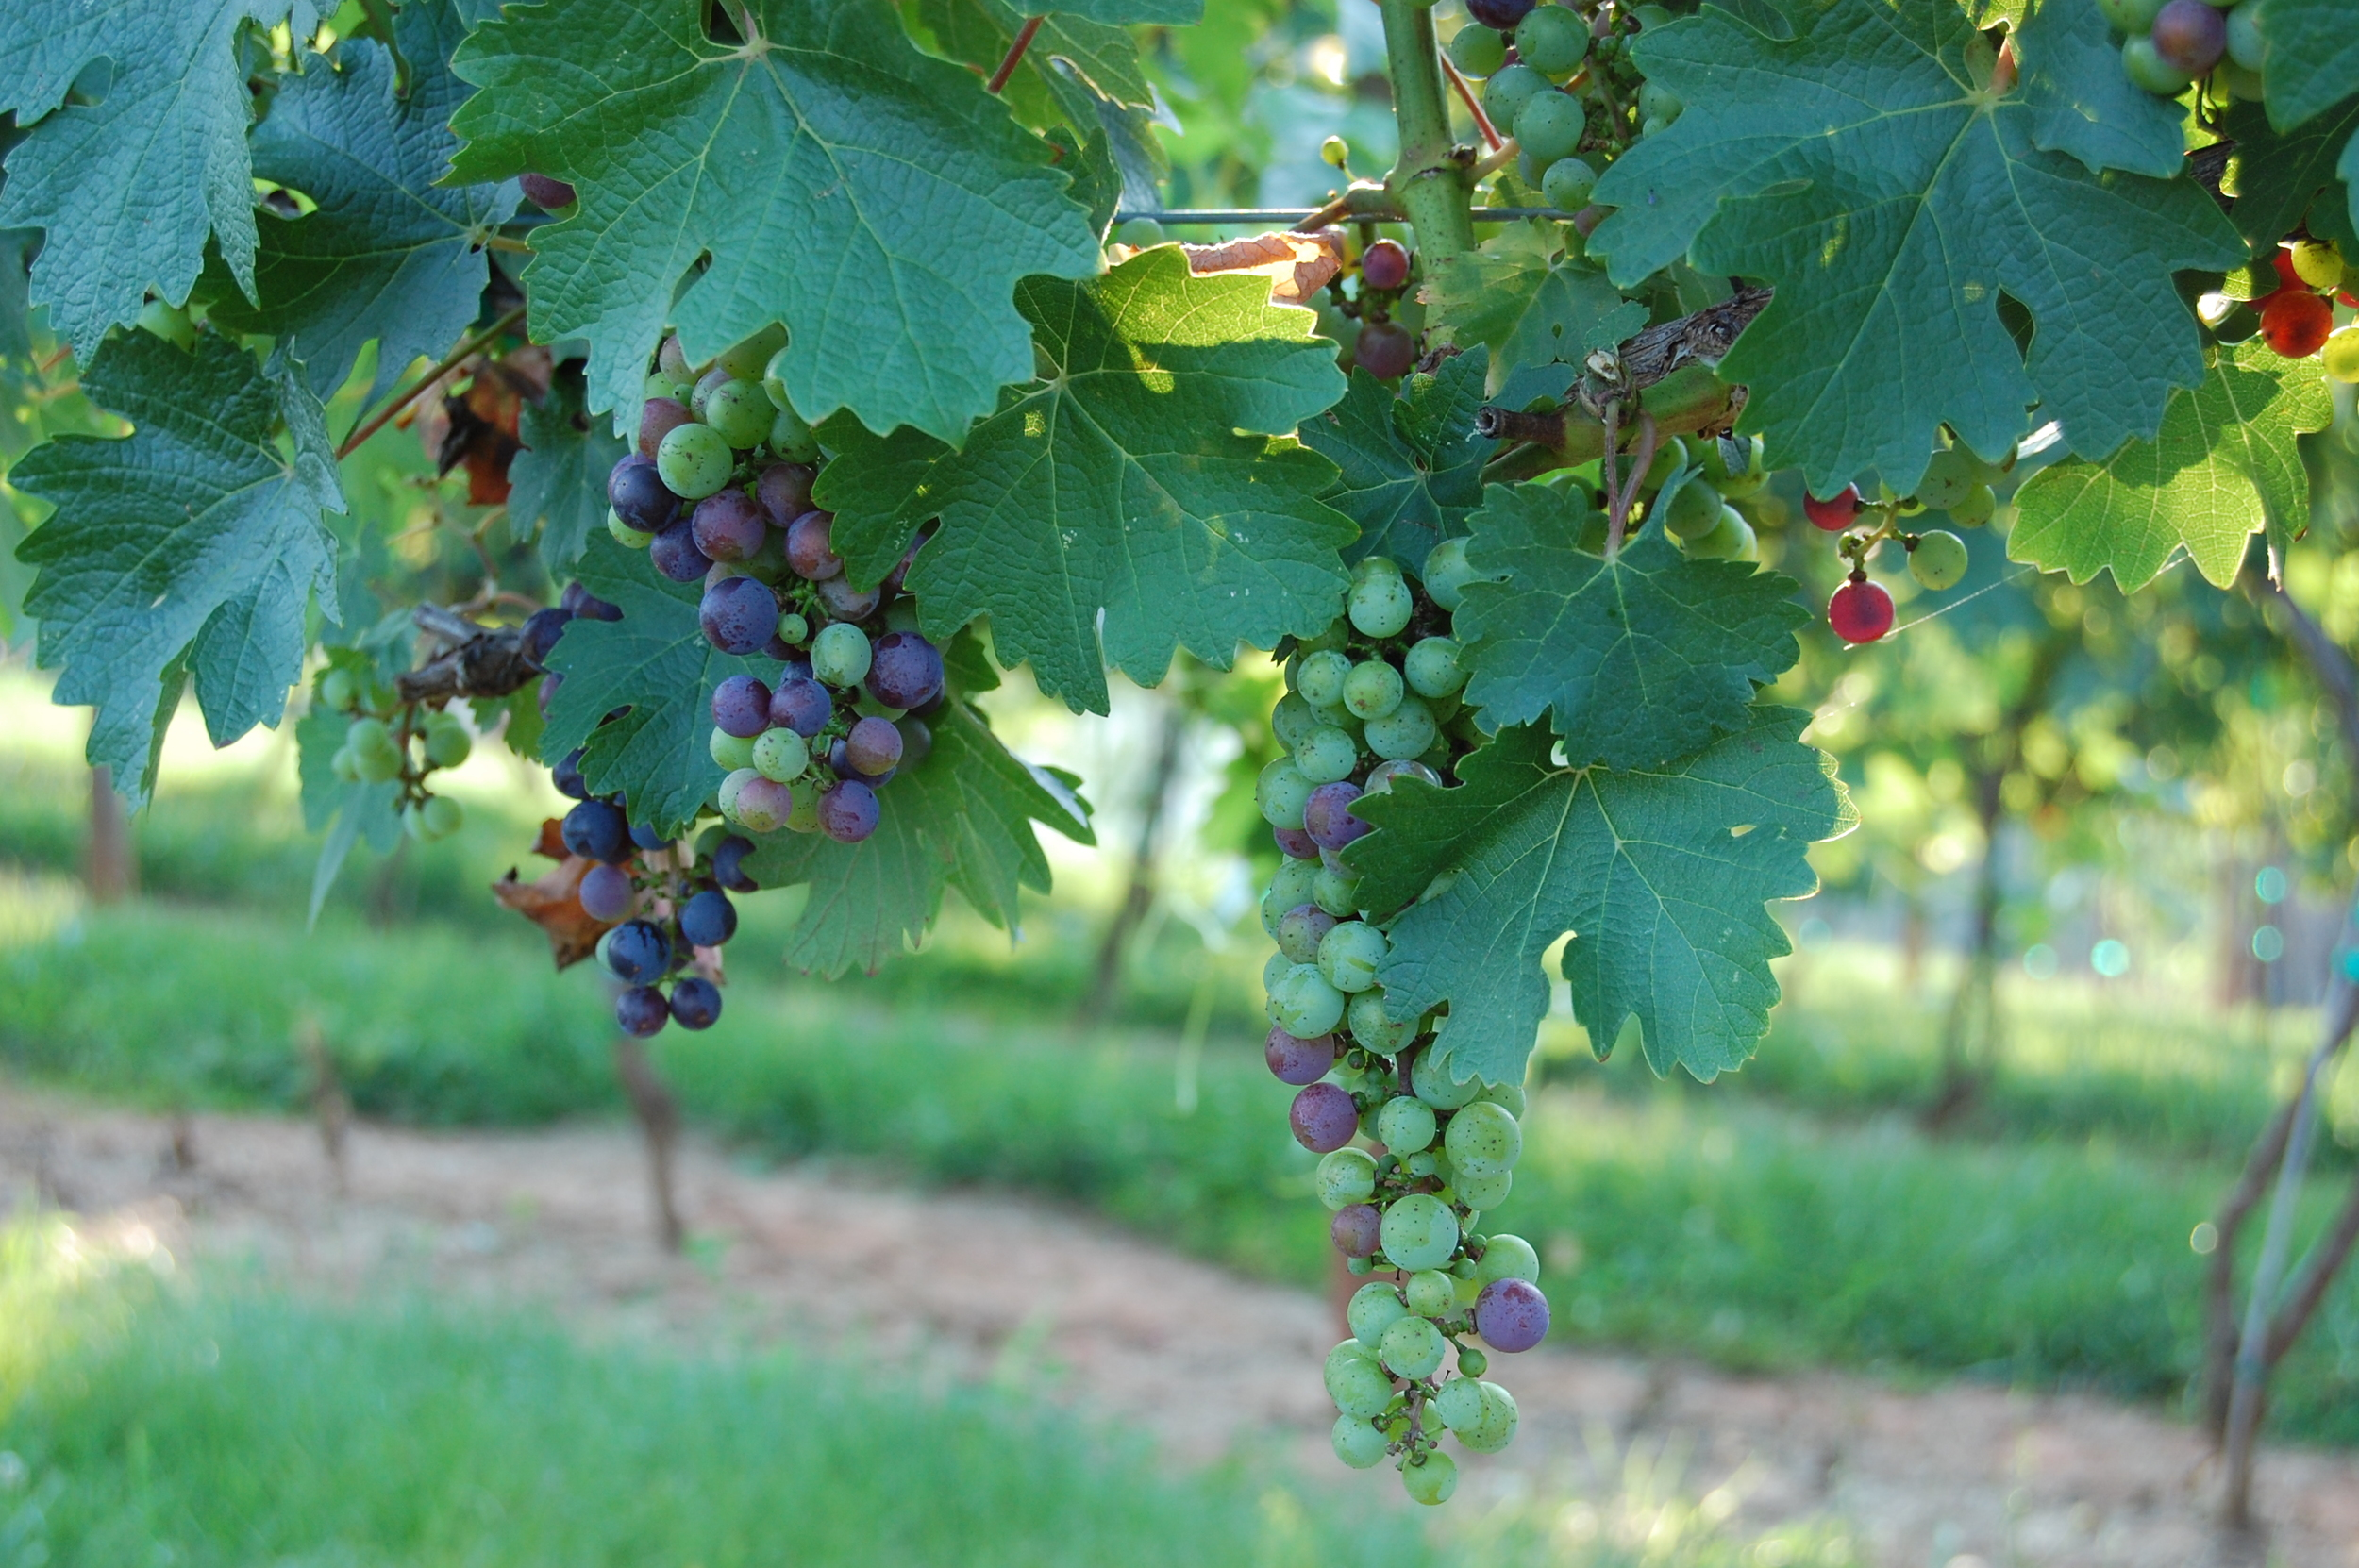 Veraison, the onset of ripening